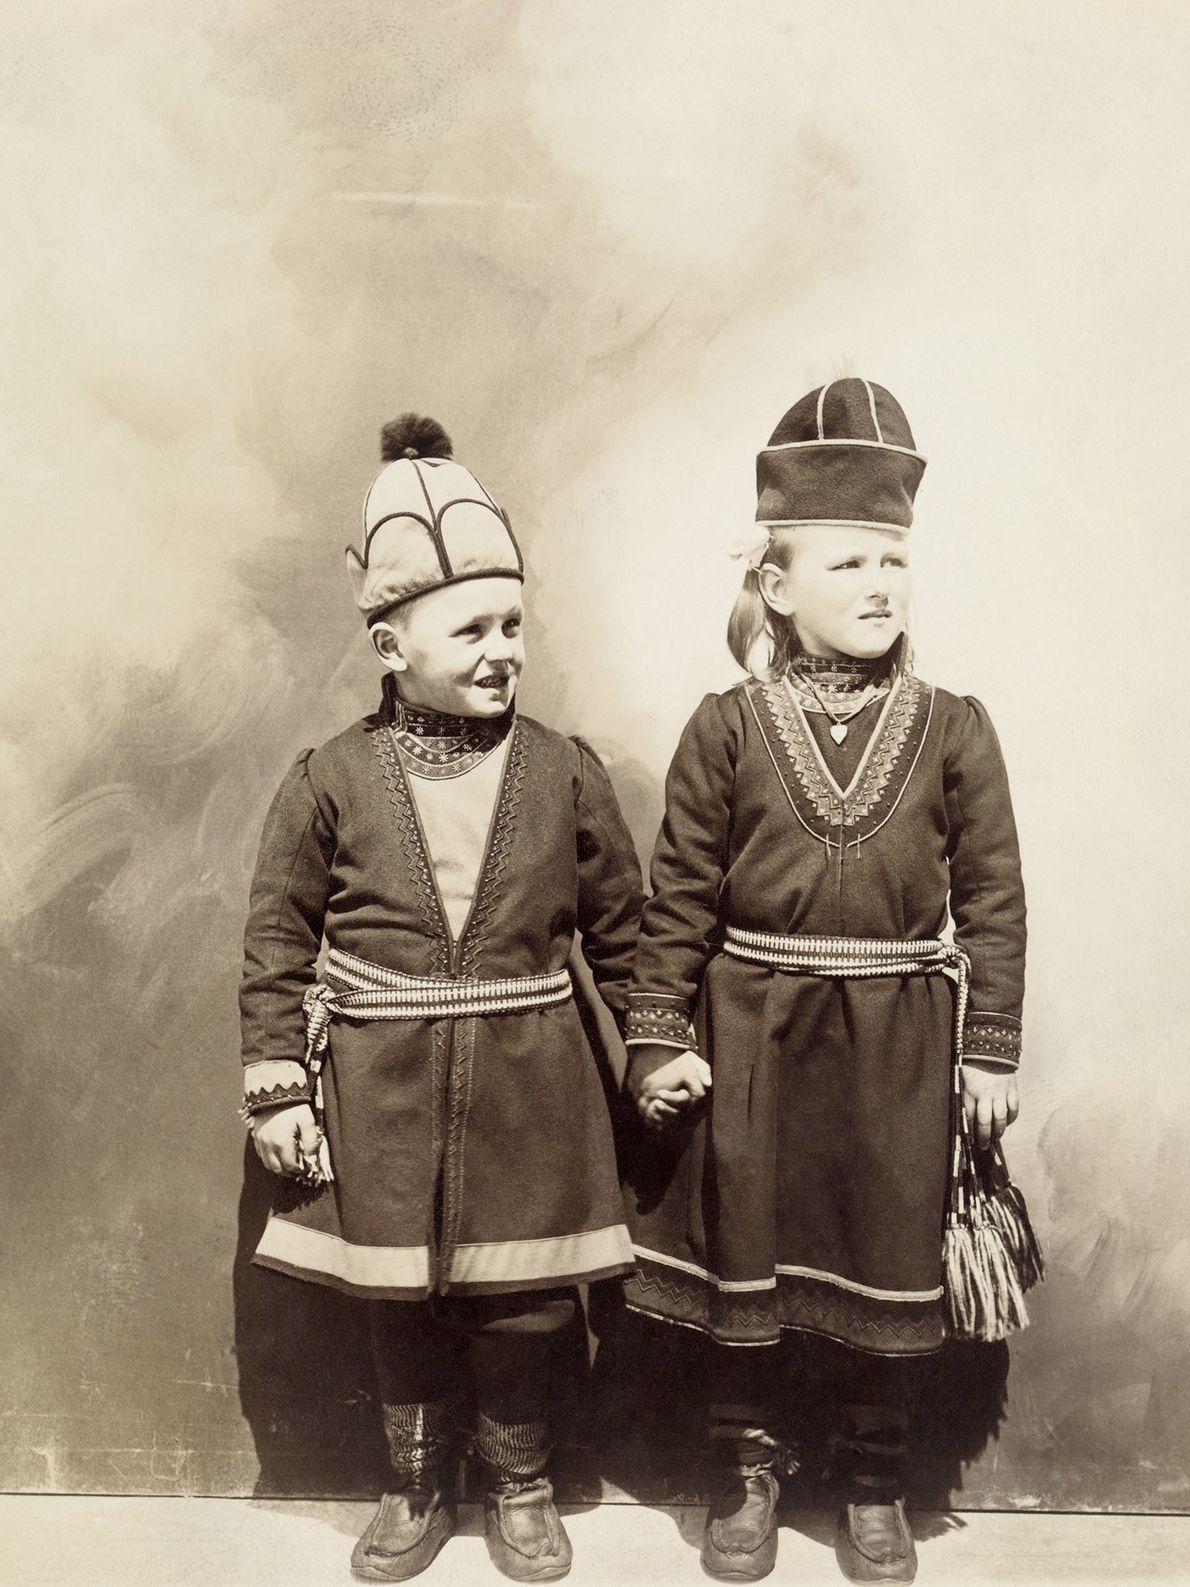 Two Norwegian children who immigrated to the U.S. in the early 1900s hold hands while wearing ...